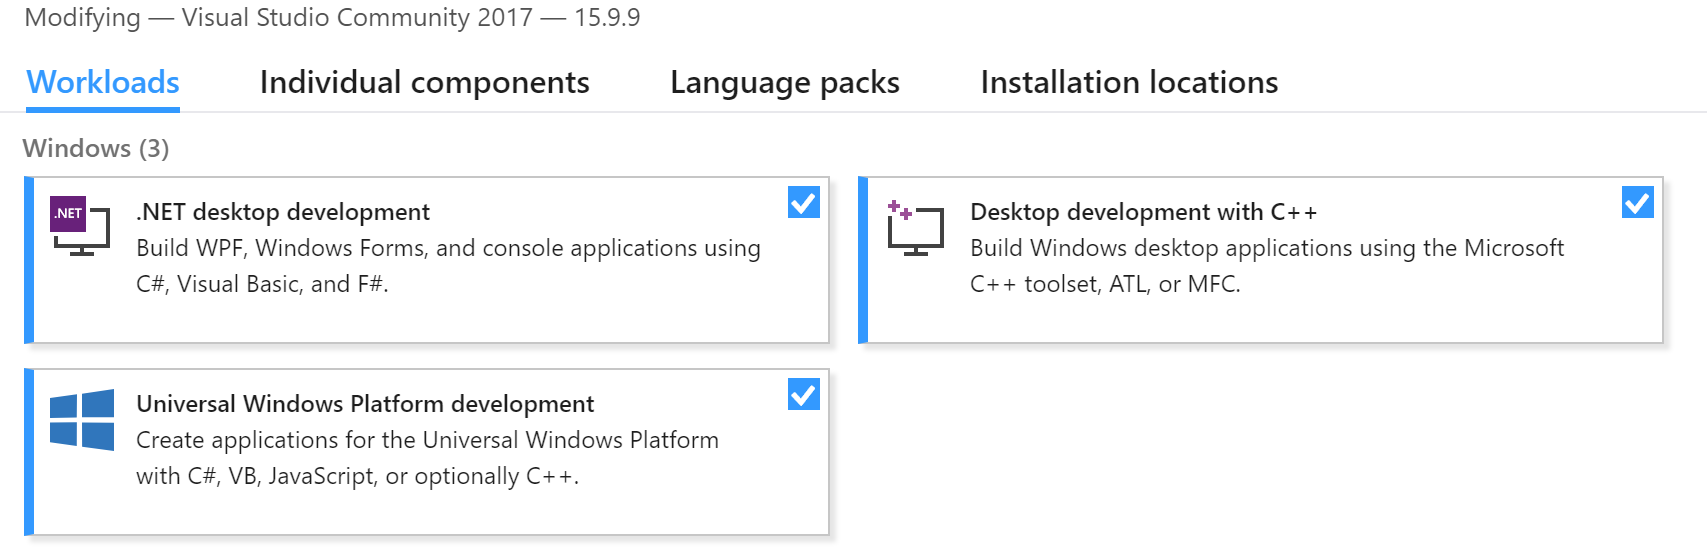 can't install on windows 10 with vs17 and toolsets v140 + v141